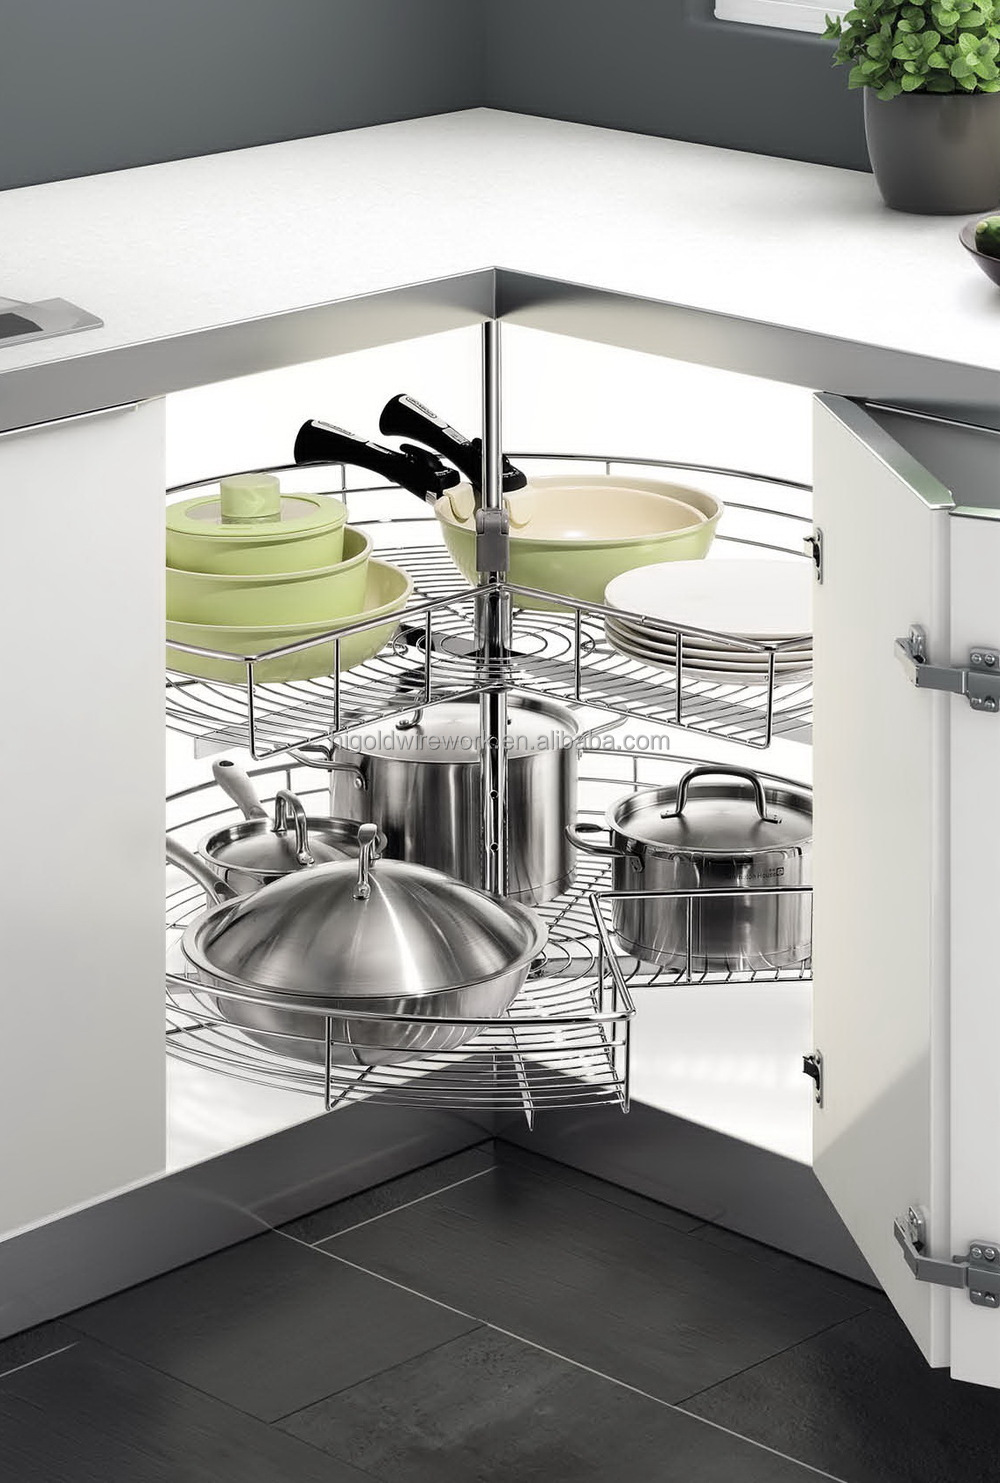 kitchen corner cabinet carousel kitchen cabinet 270 degree corner carousel storage basket 21574